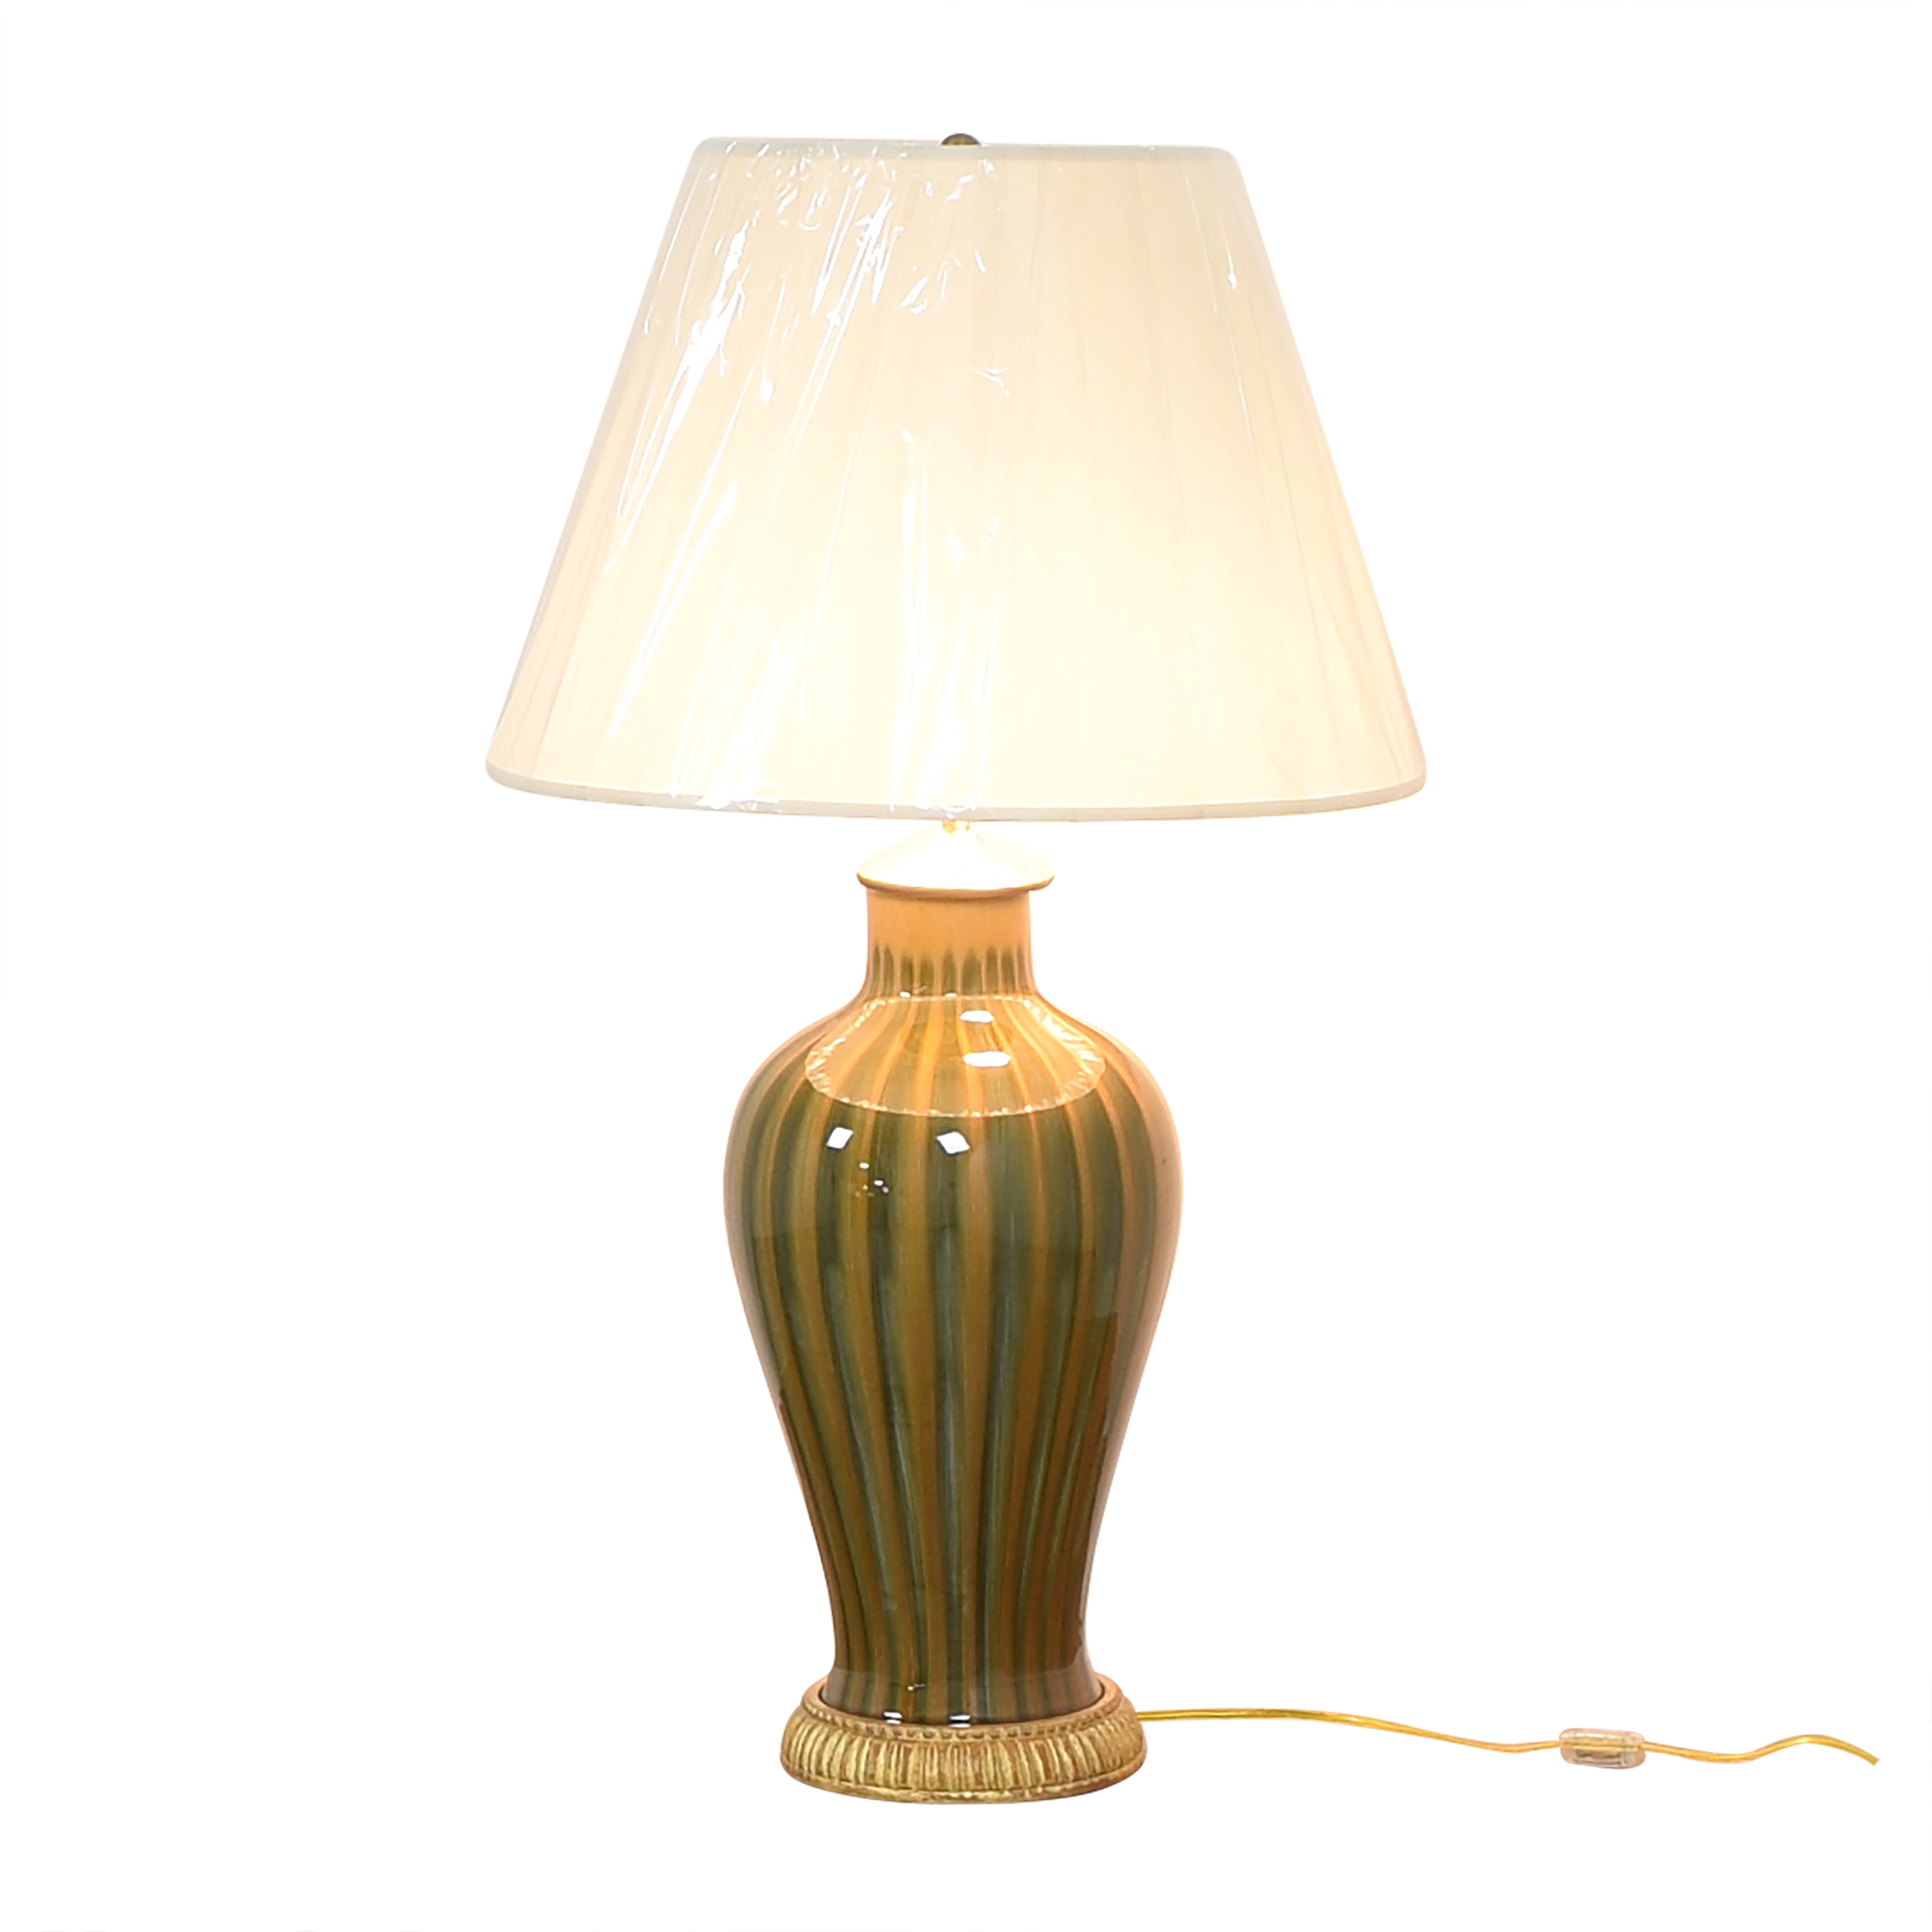 Bunny Williams Home Bunny Williams Home Beeline Table Lamp Lamps